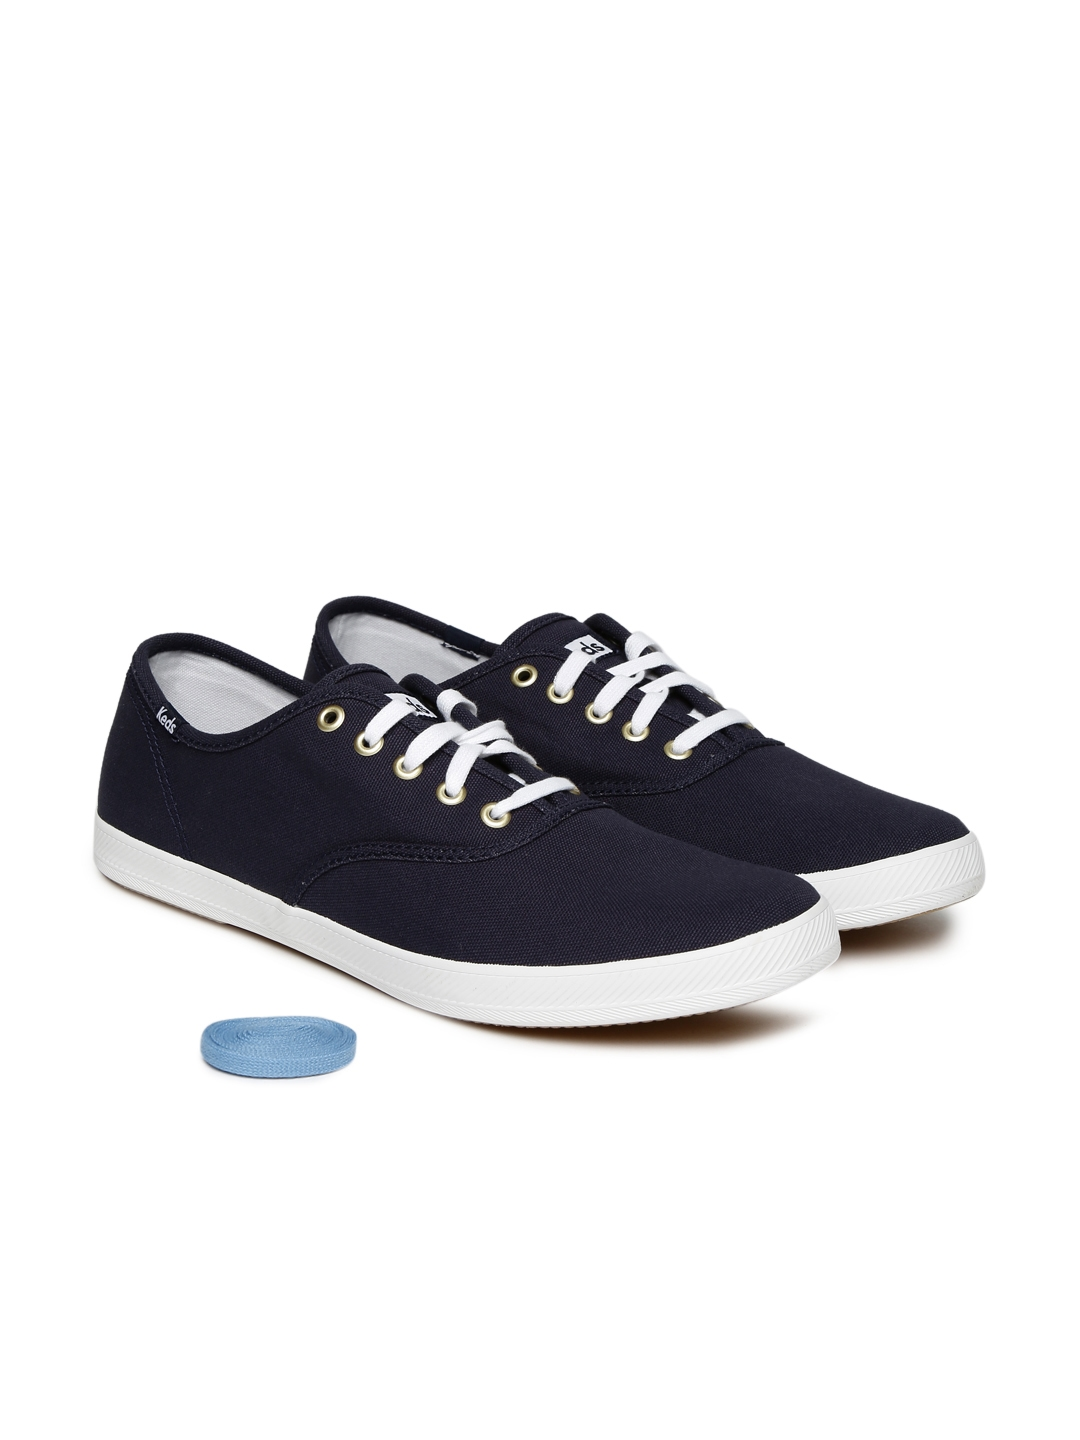 74e5bc55985 Buy Keds Men Navy Blue CHAMPION CVO Sneakers - Casual Shoes for Men ...